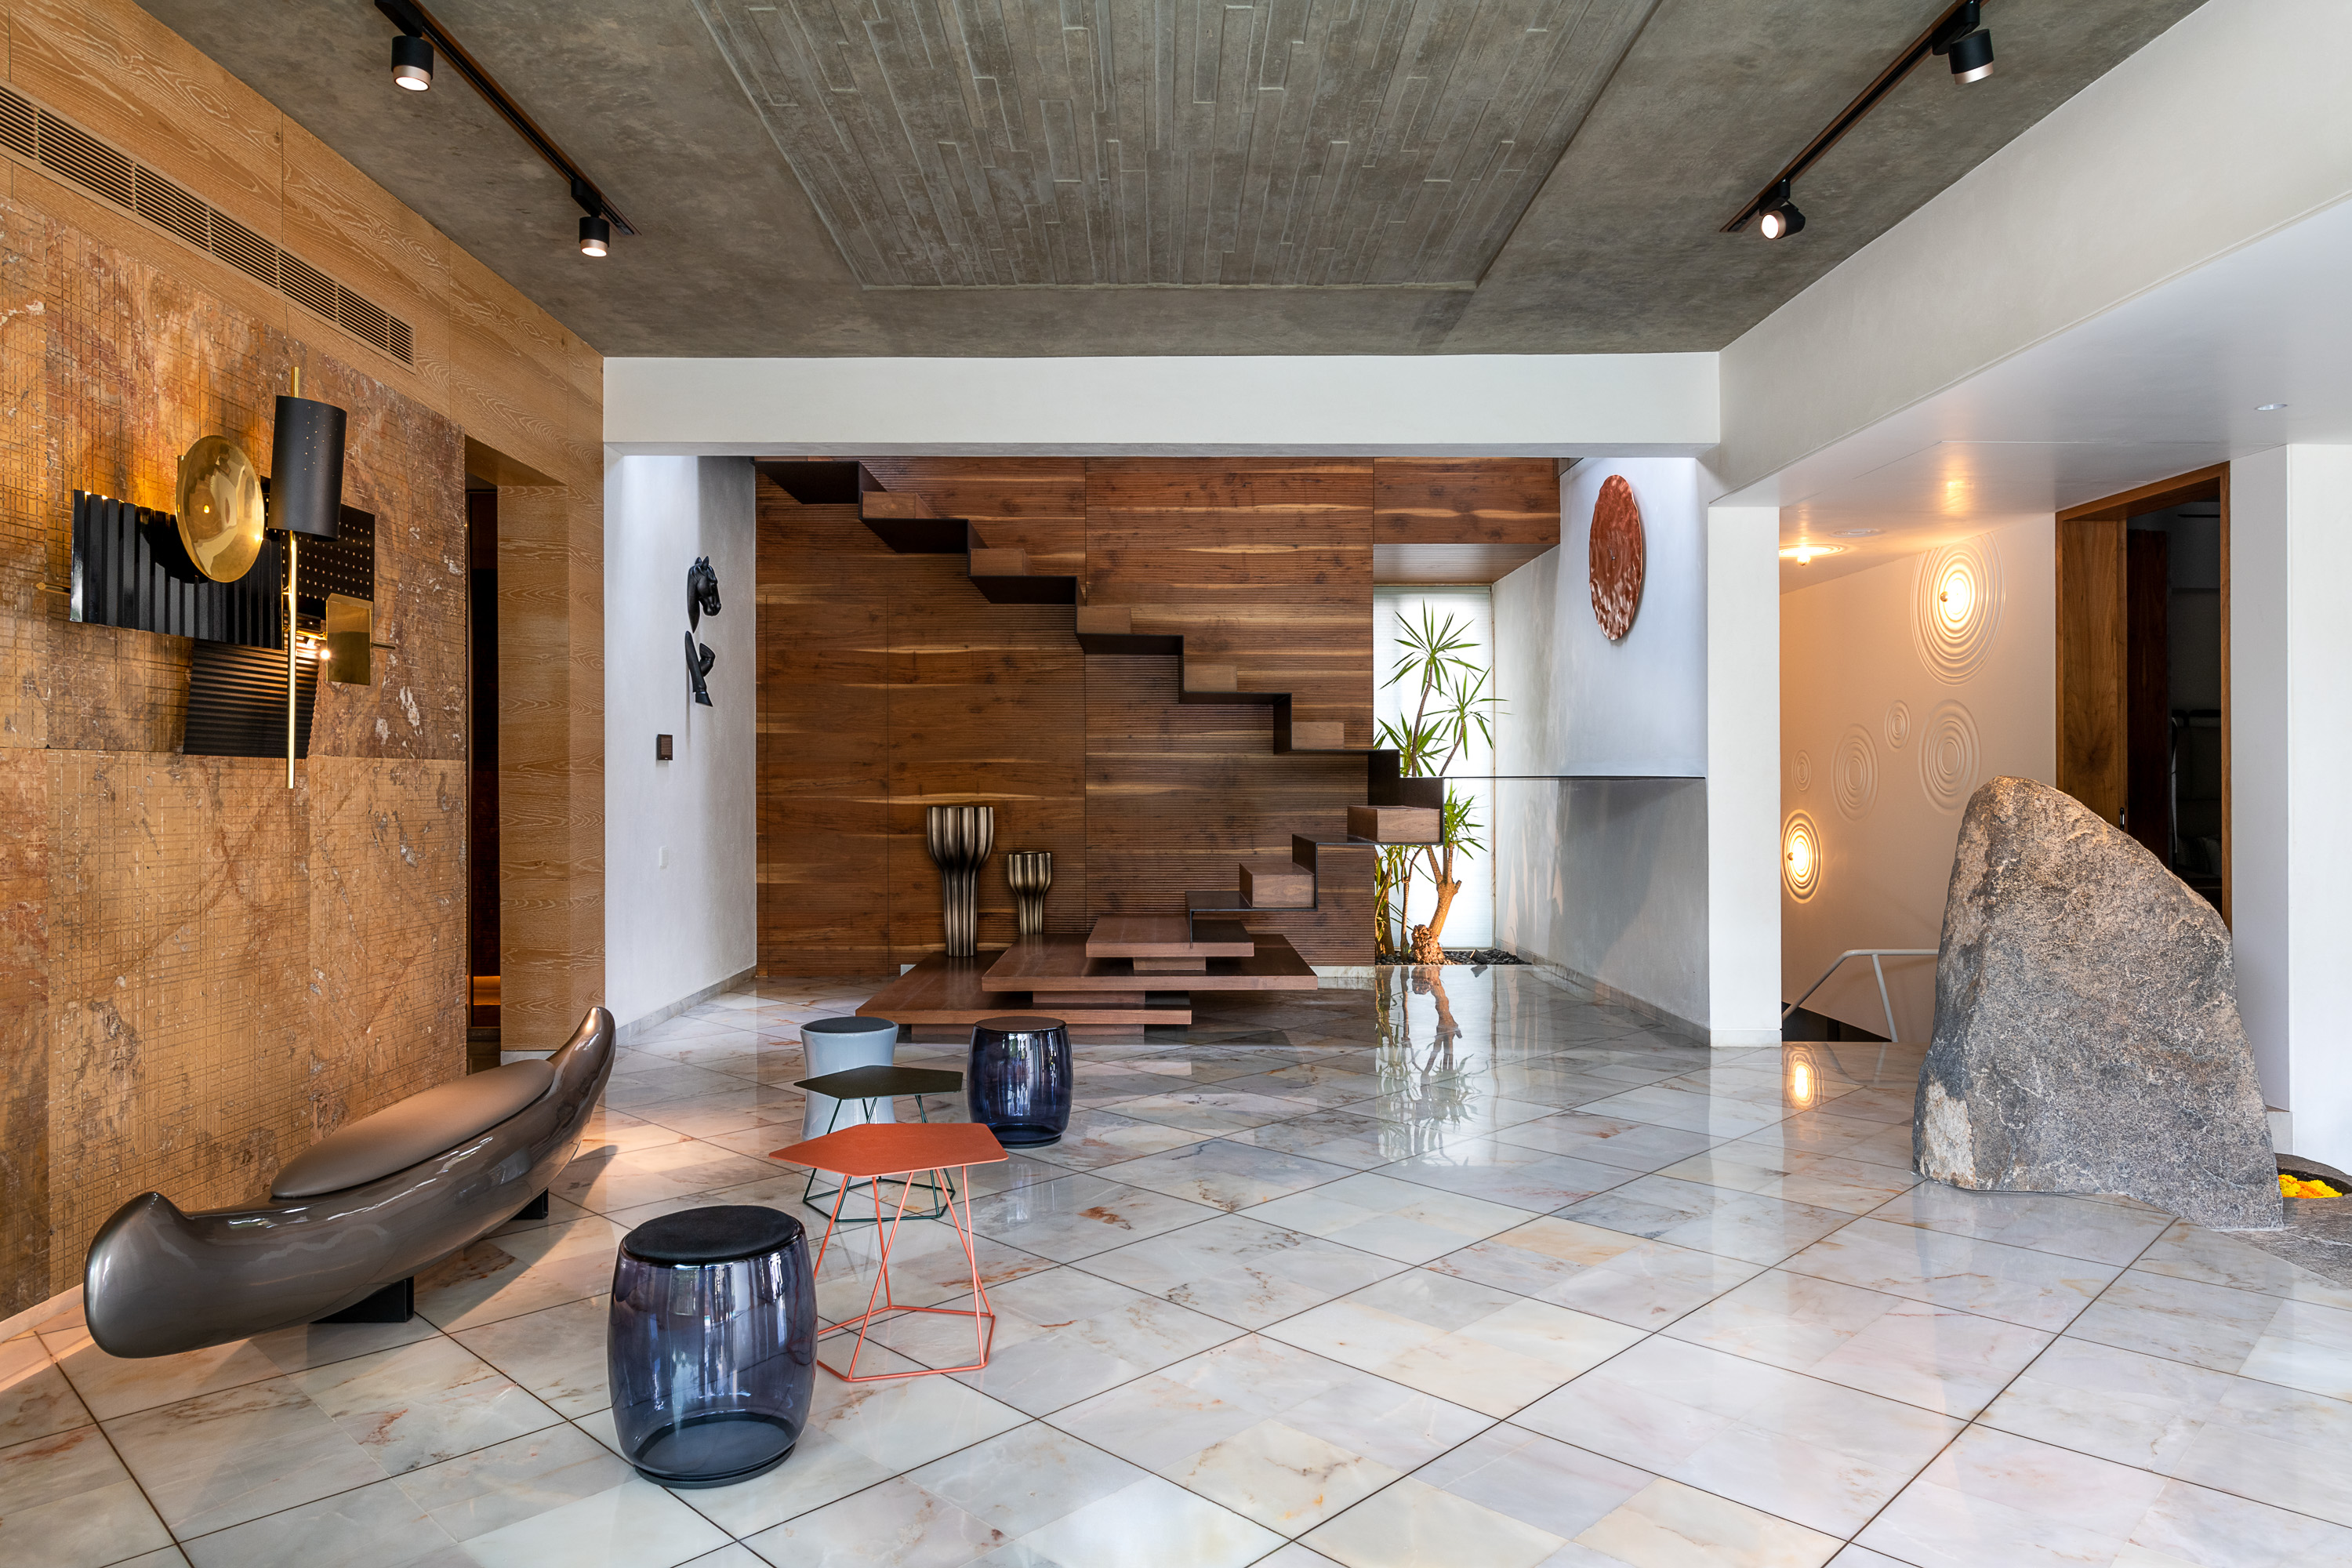 Sustainability Meets Luxury In This Private Residence by NA Architects (7) na architects NA Architects Design A Private Residence Where Copper Hues Reign Sustainability Meets Luxury In This Private Residence by NA Architects 7